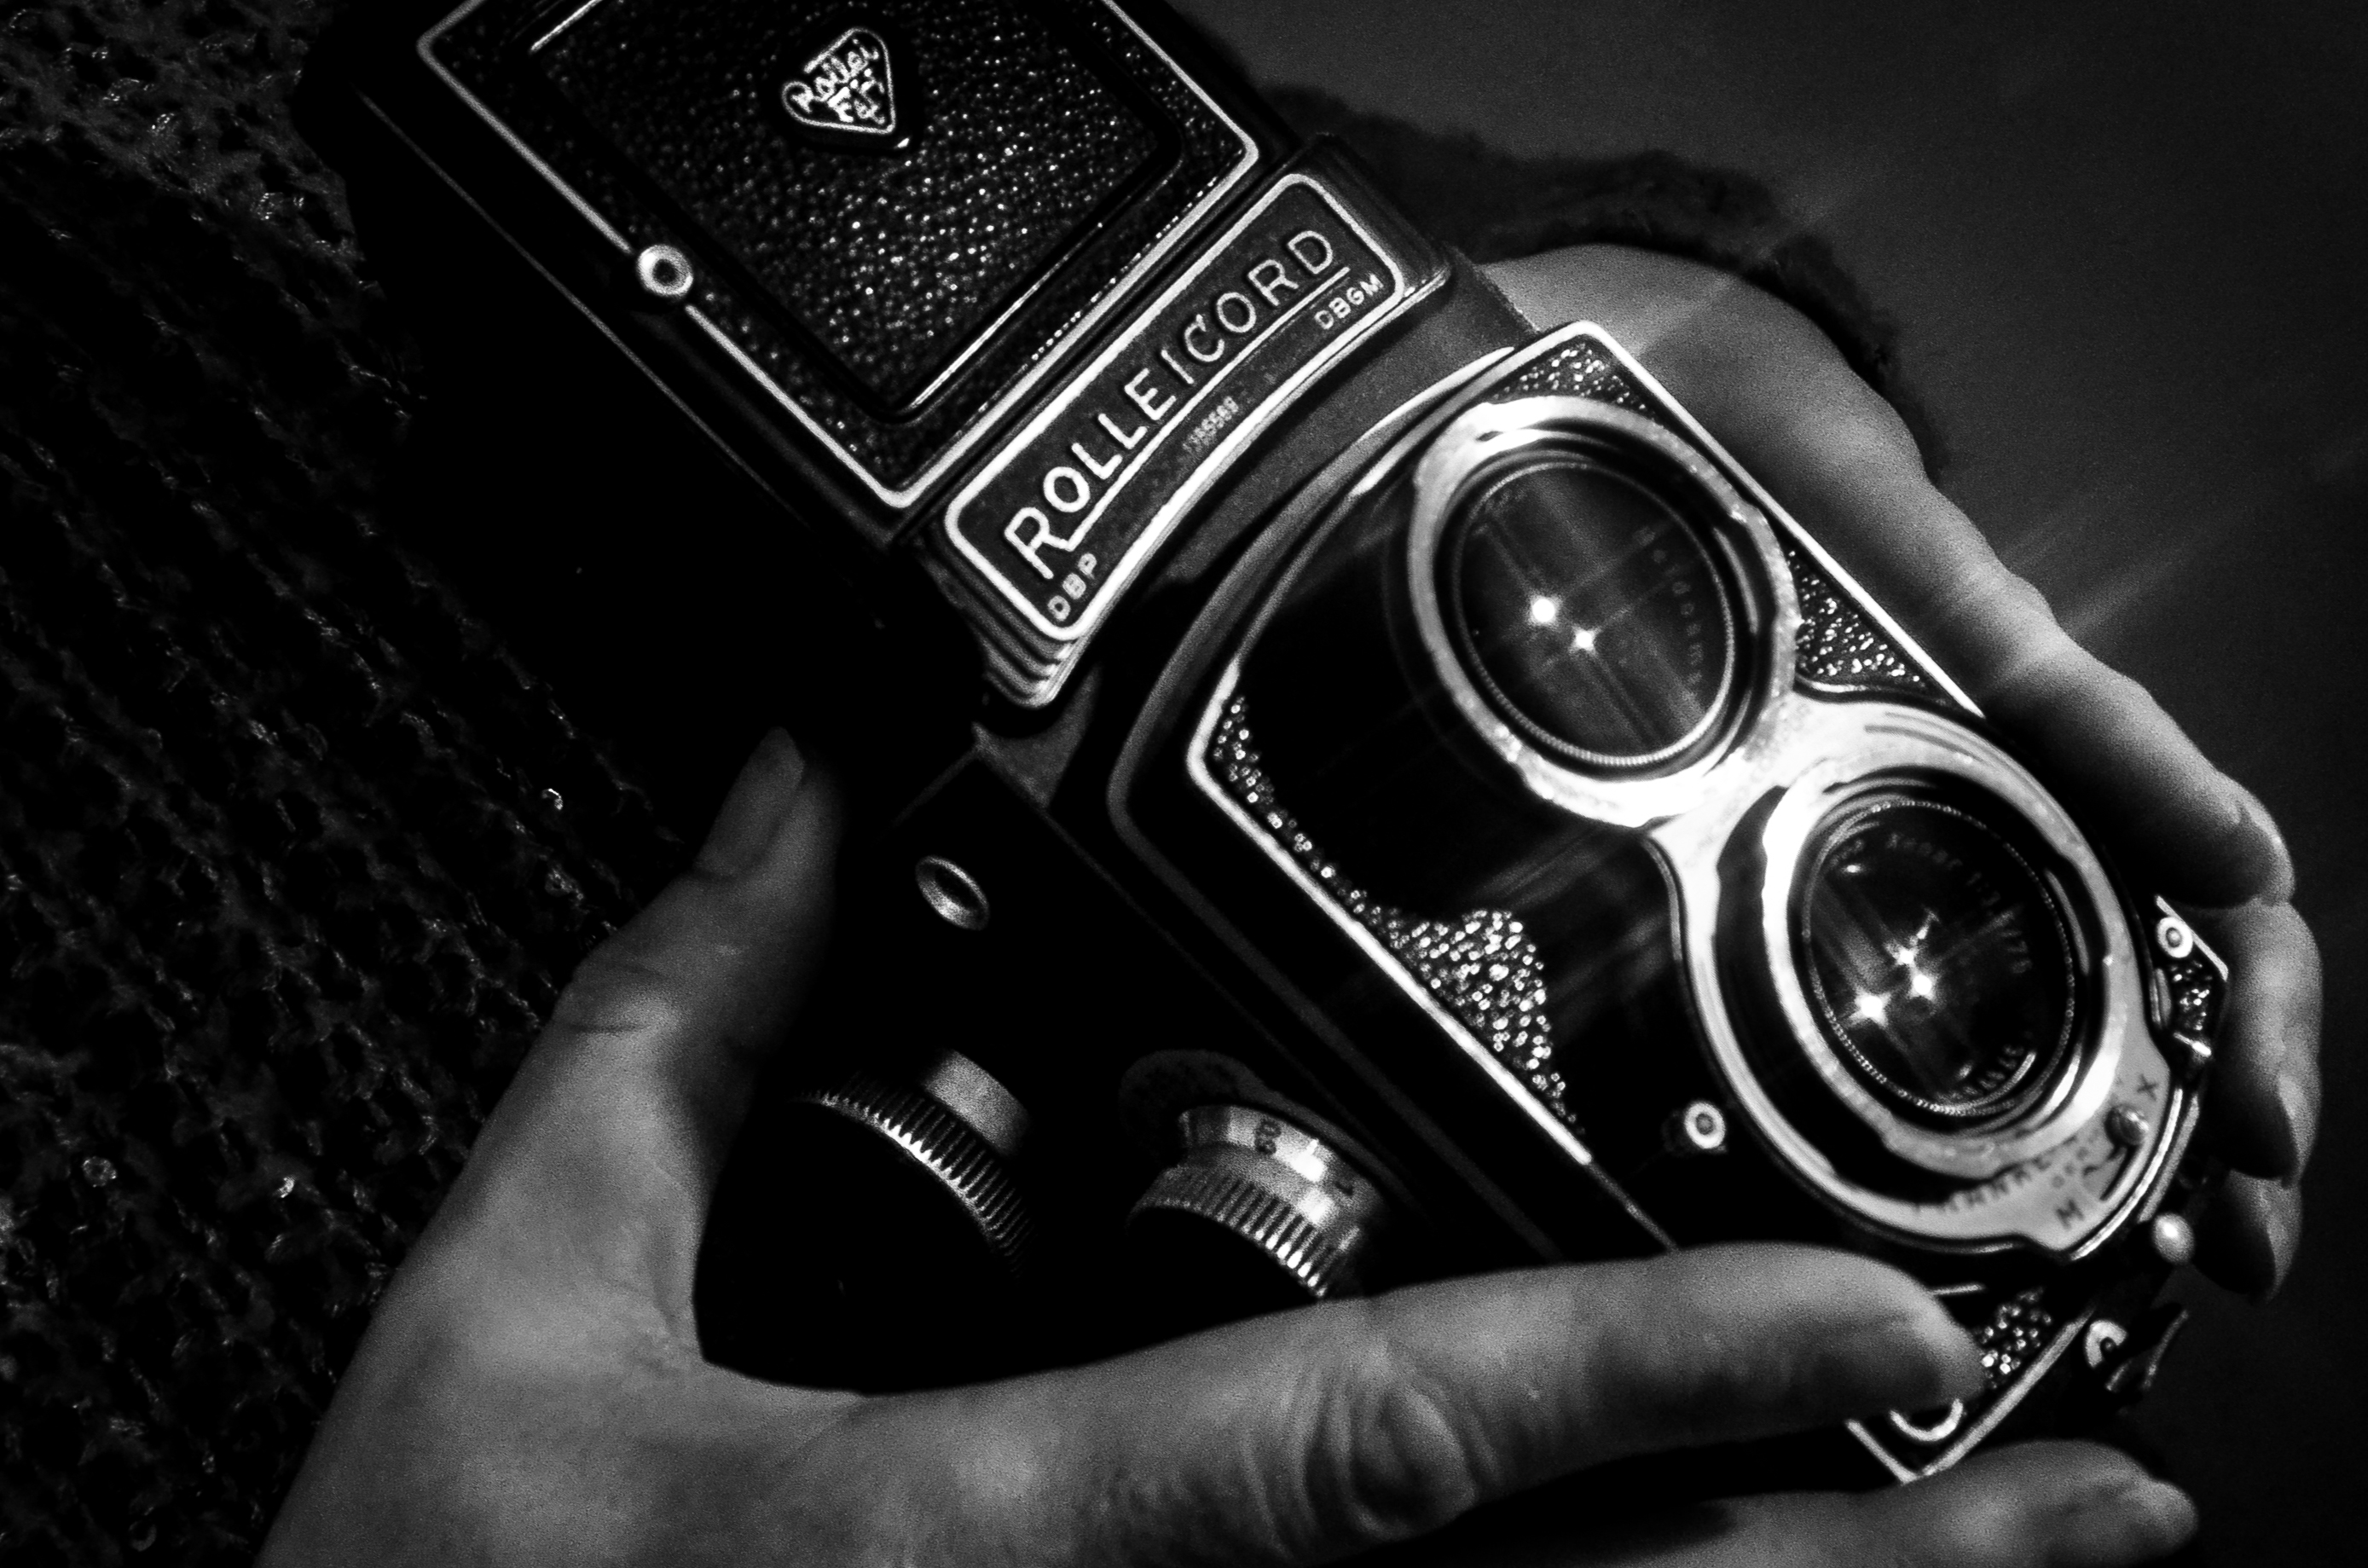 Picture of old Rolleicord camera